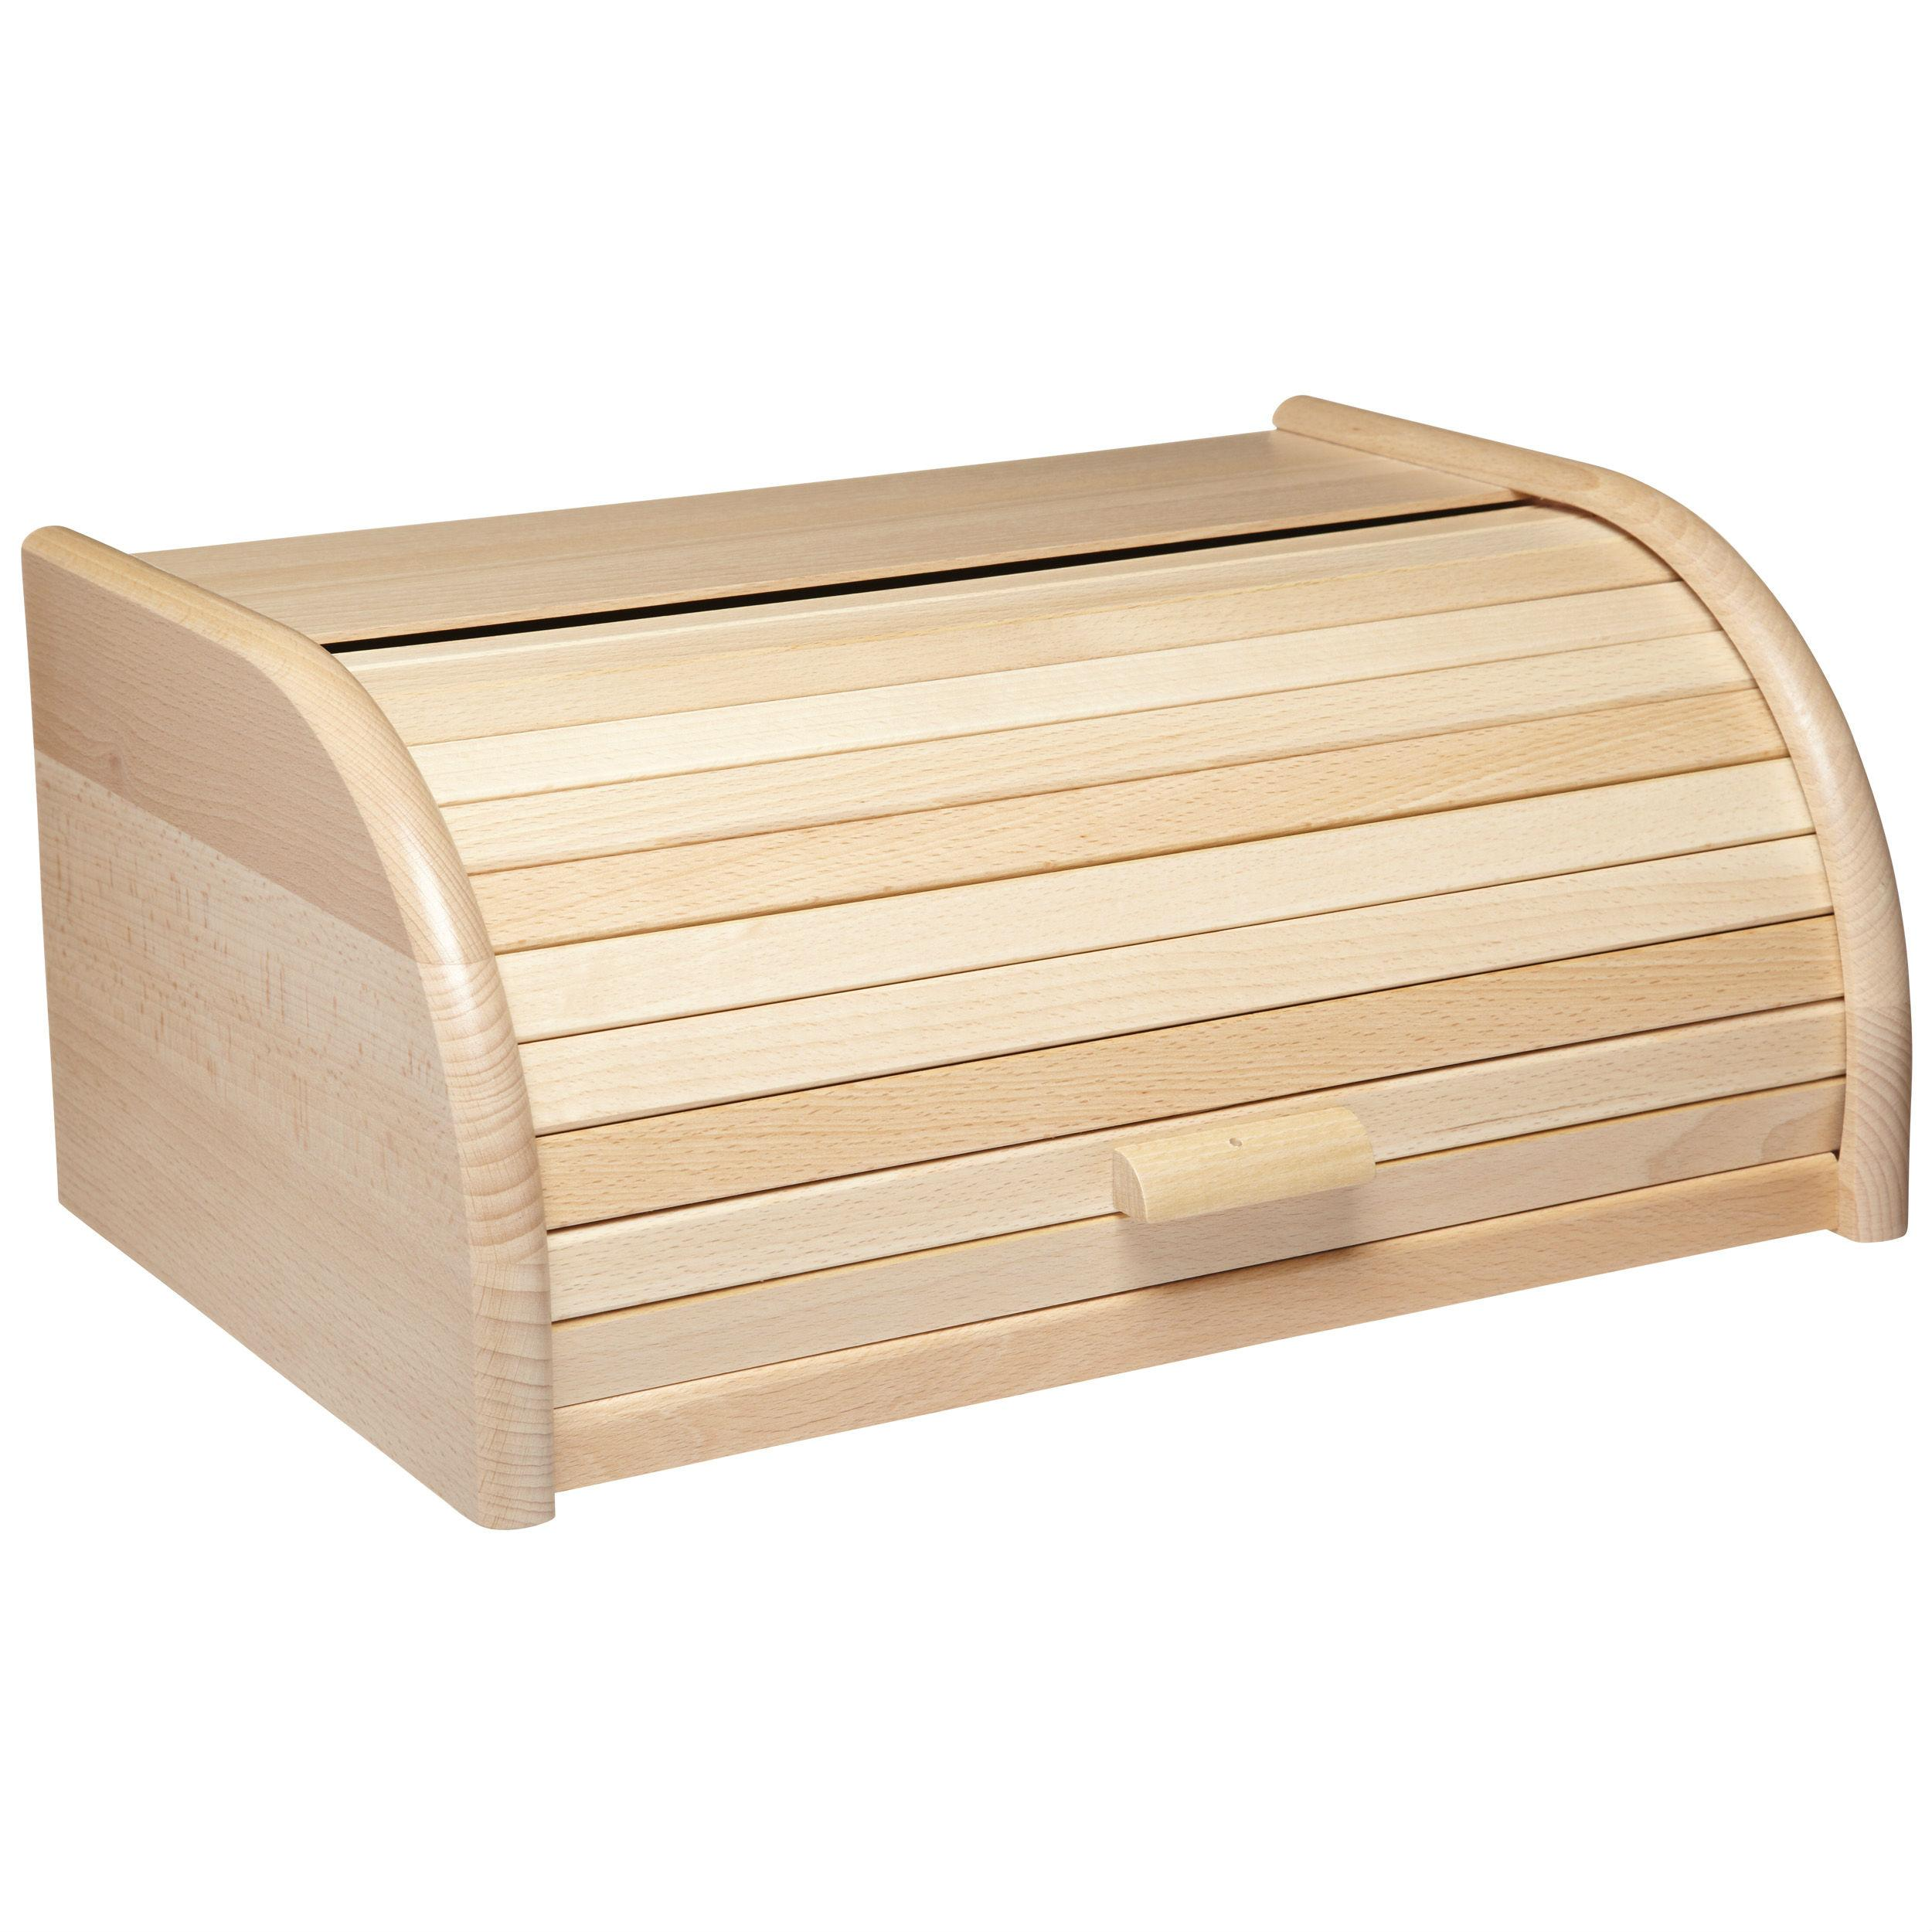 Wooden Bread Bin Cookware, Dining & Bar Bread Bins